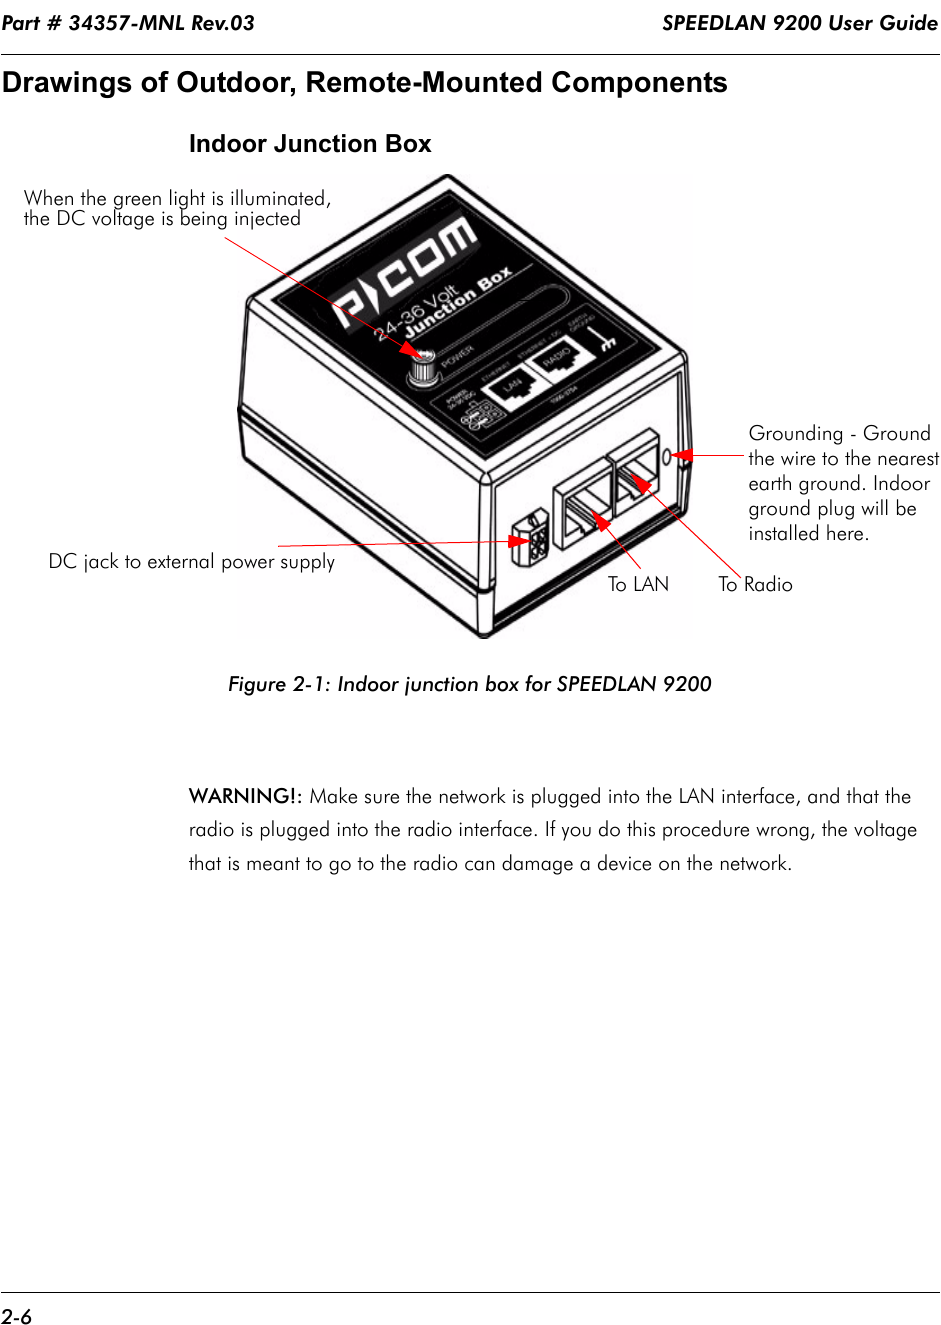 Part # 34357-MNL Rev.03                                                                  SPEEDLAN 9200 User Guide 2-6Drawings of Outdoor, Remote-Mounted ComponentsIndoor Junction Box Figure 2-1: Indoor junction box for SPEEDLAN 9200  WARNING!: Make sure the network is plugged into the LAN interface, and that the radio is plugged into the radio interface. If you do this procedure wrong, the voltage that is meant to go to the radio can damage a device on the network. When the green light is illuminated, the DC voltage is being injectedDC jack to external power supplyTo LAN To RadioGrounding - Groundthe wire to the nearestearth ground. Indoorground plug will be installed here.